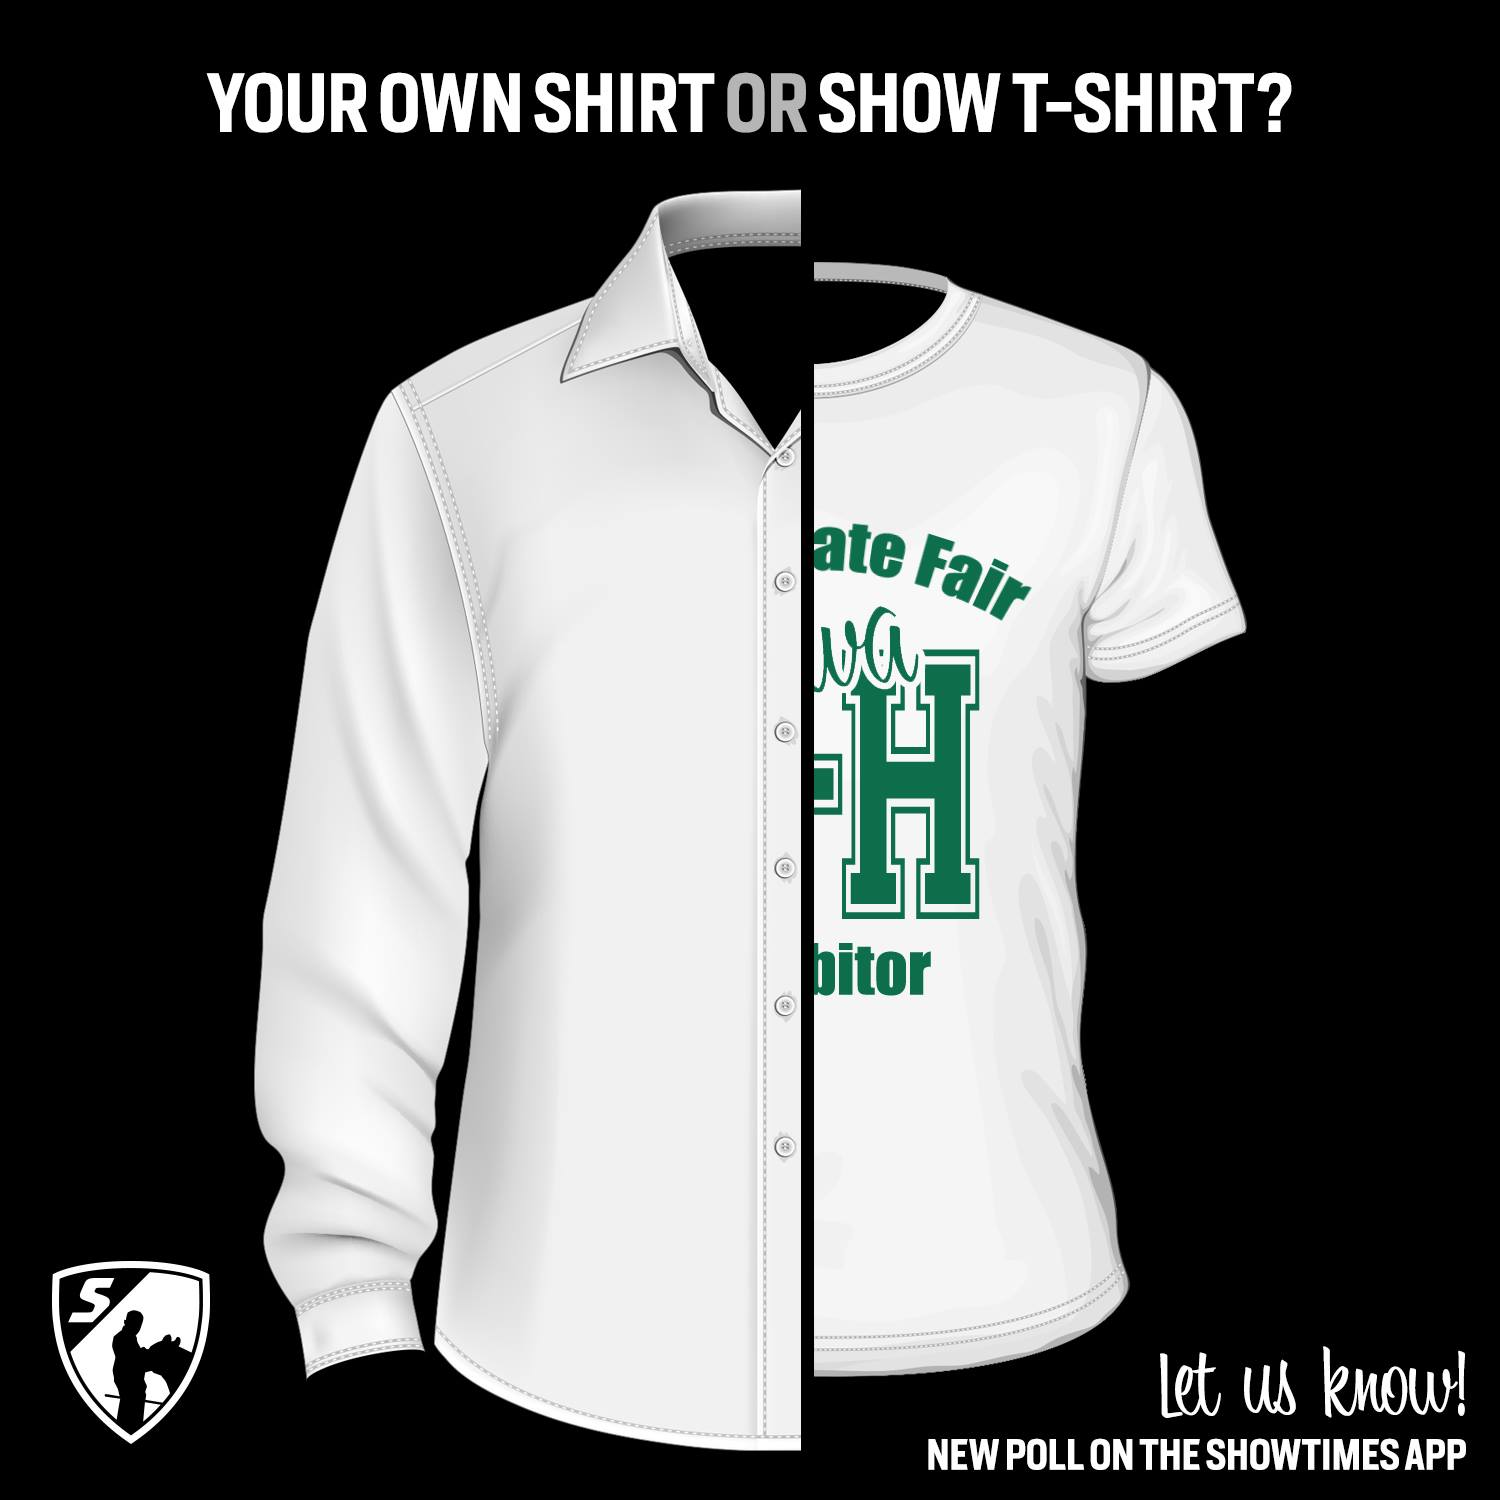 your own shirt or show t